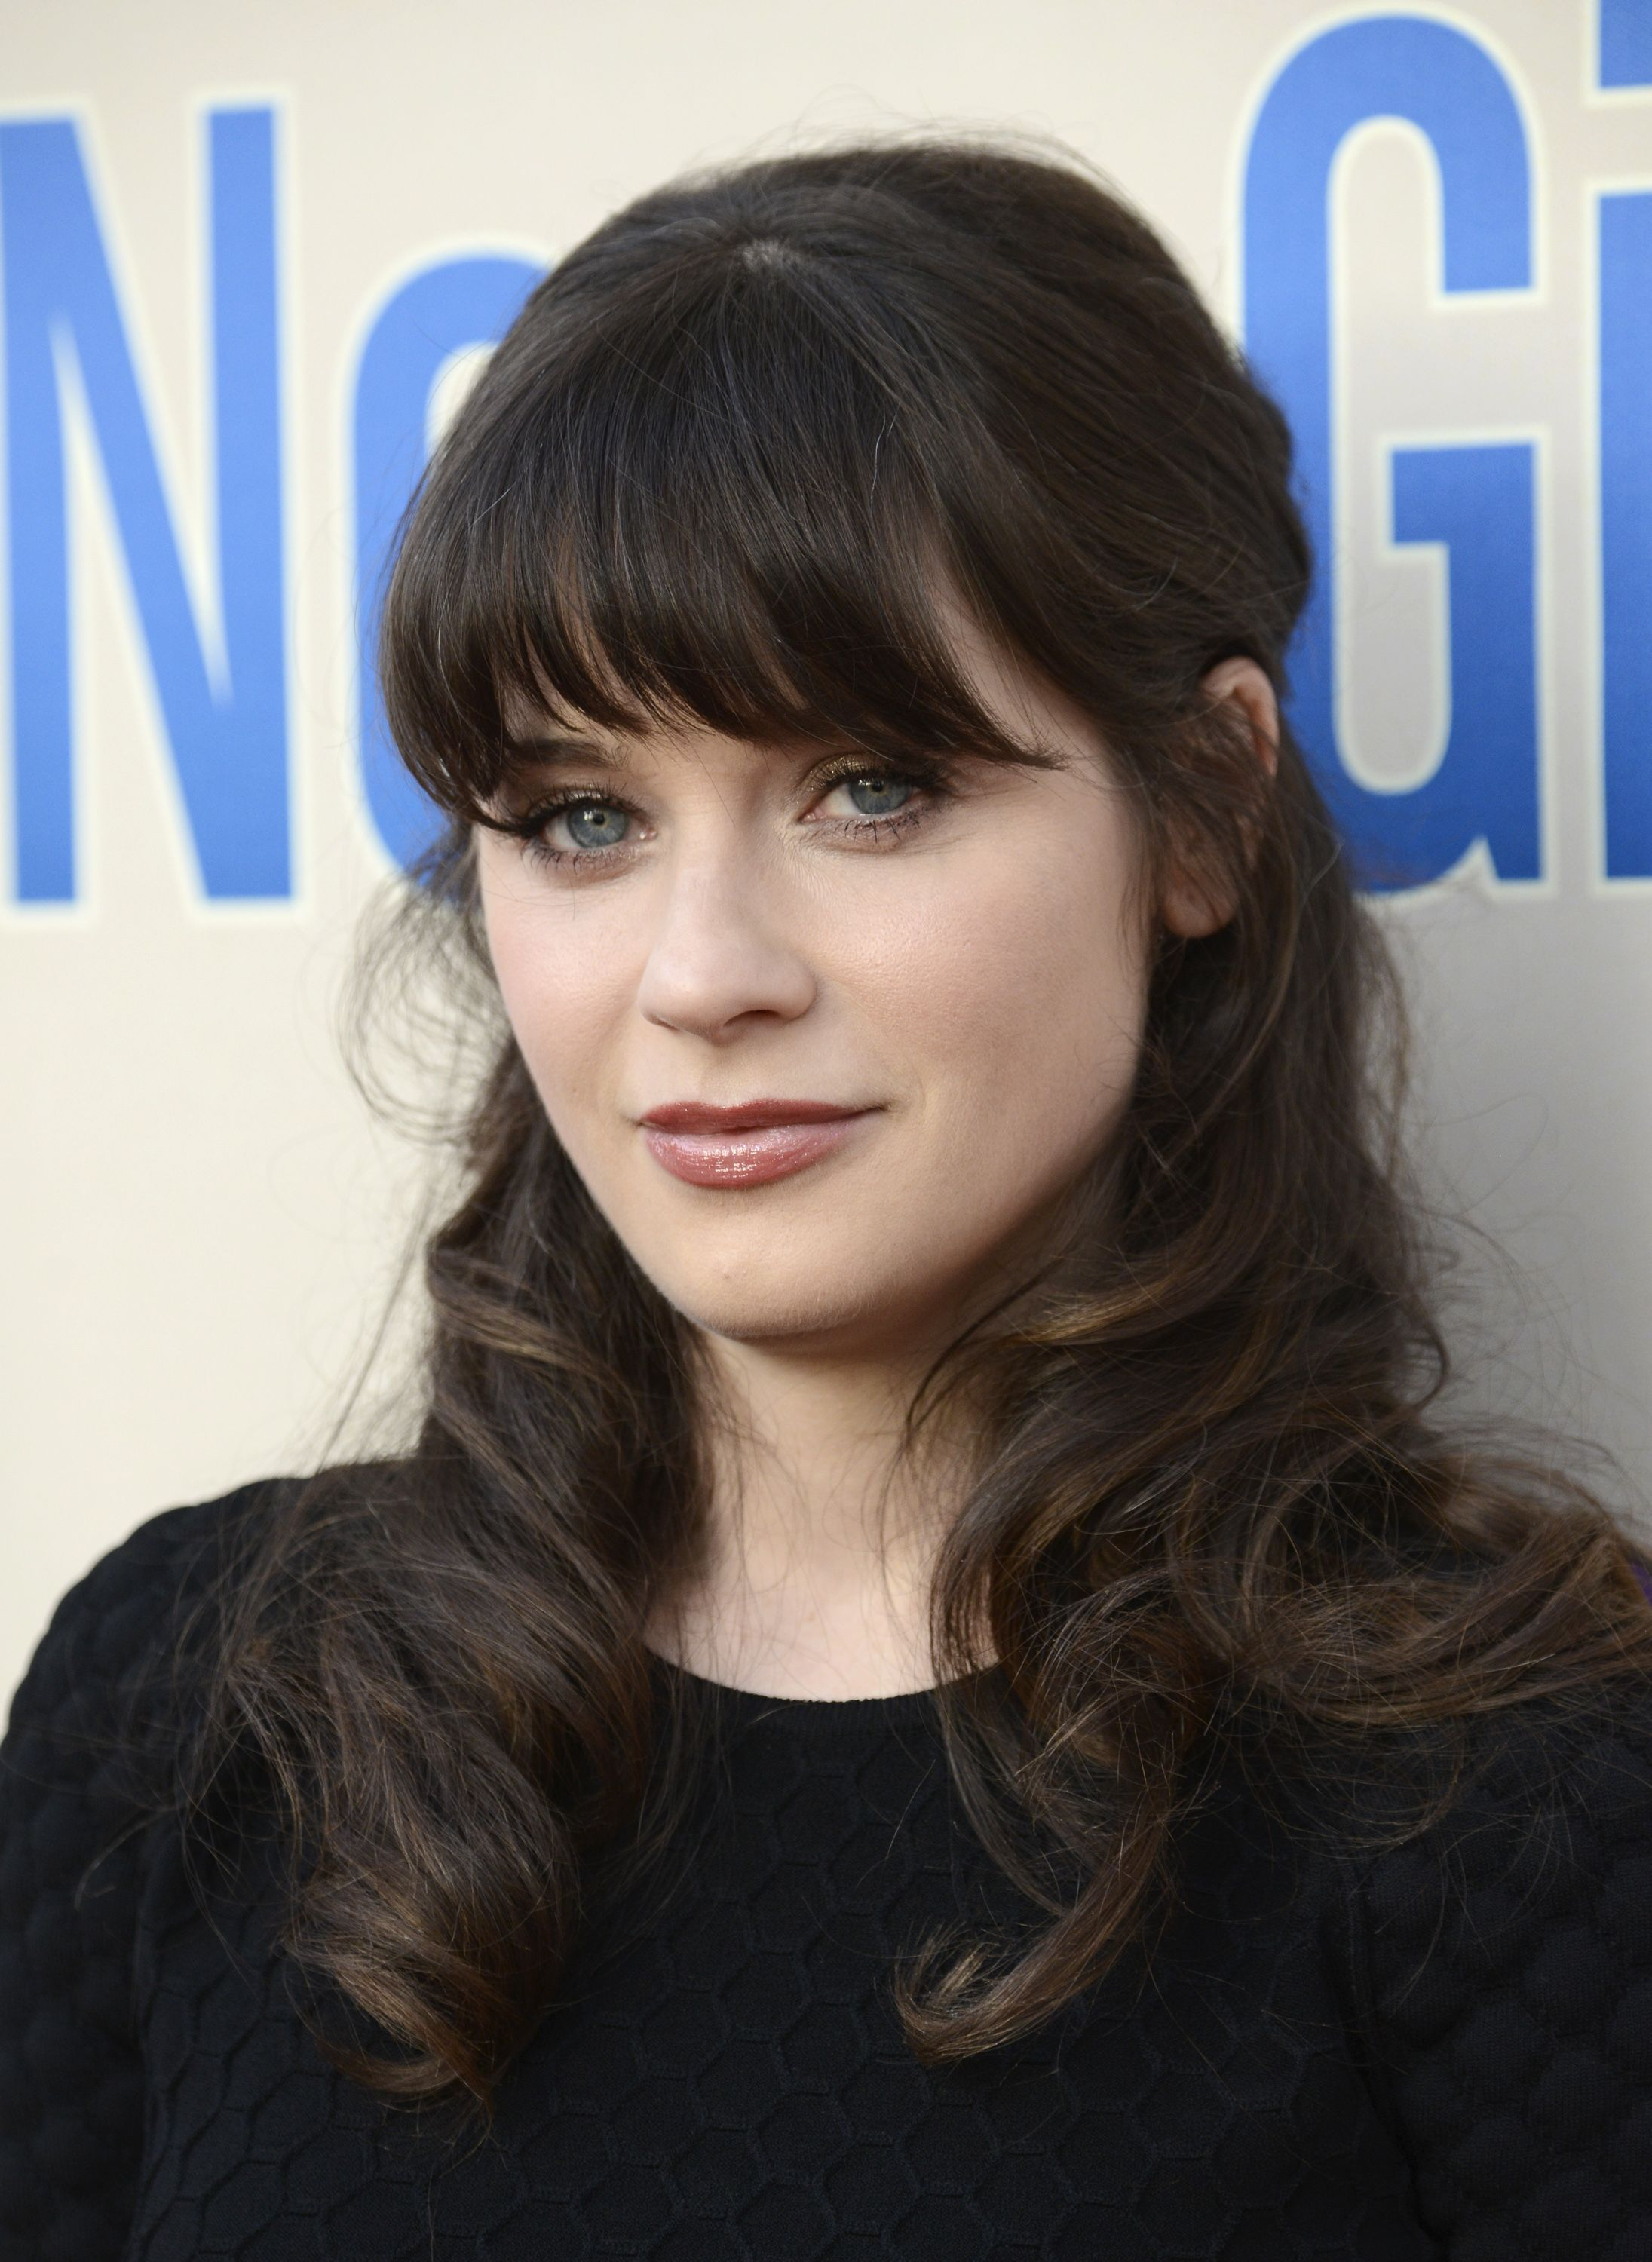 Pin By Miriam Barreto On Hair Summer 2015 Zooey Deschanel Hair Hair Styles Hairstyles With Bangs